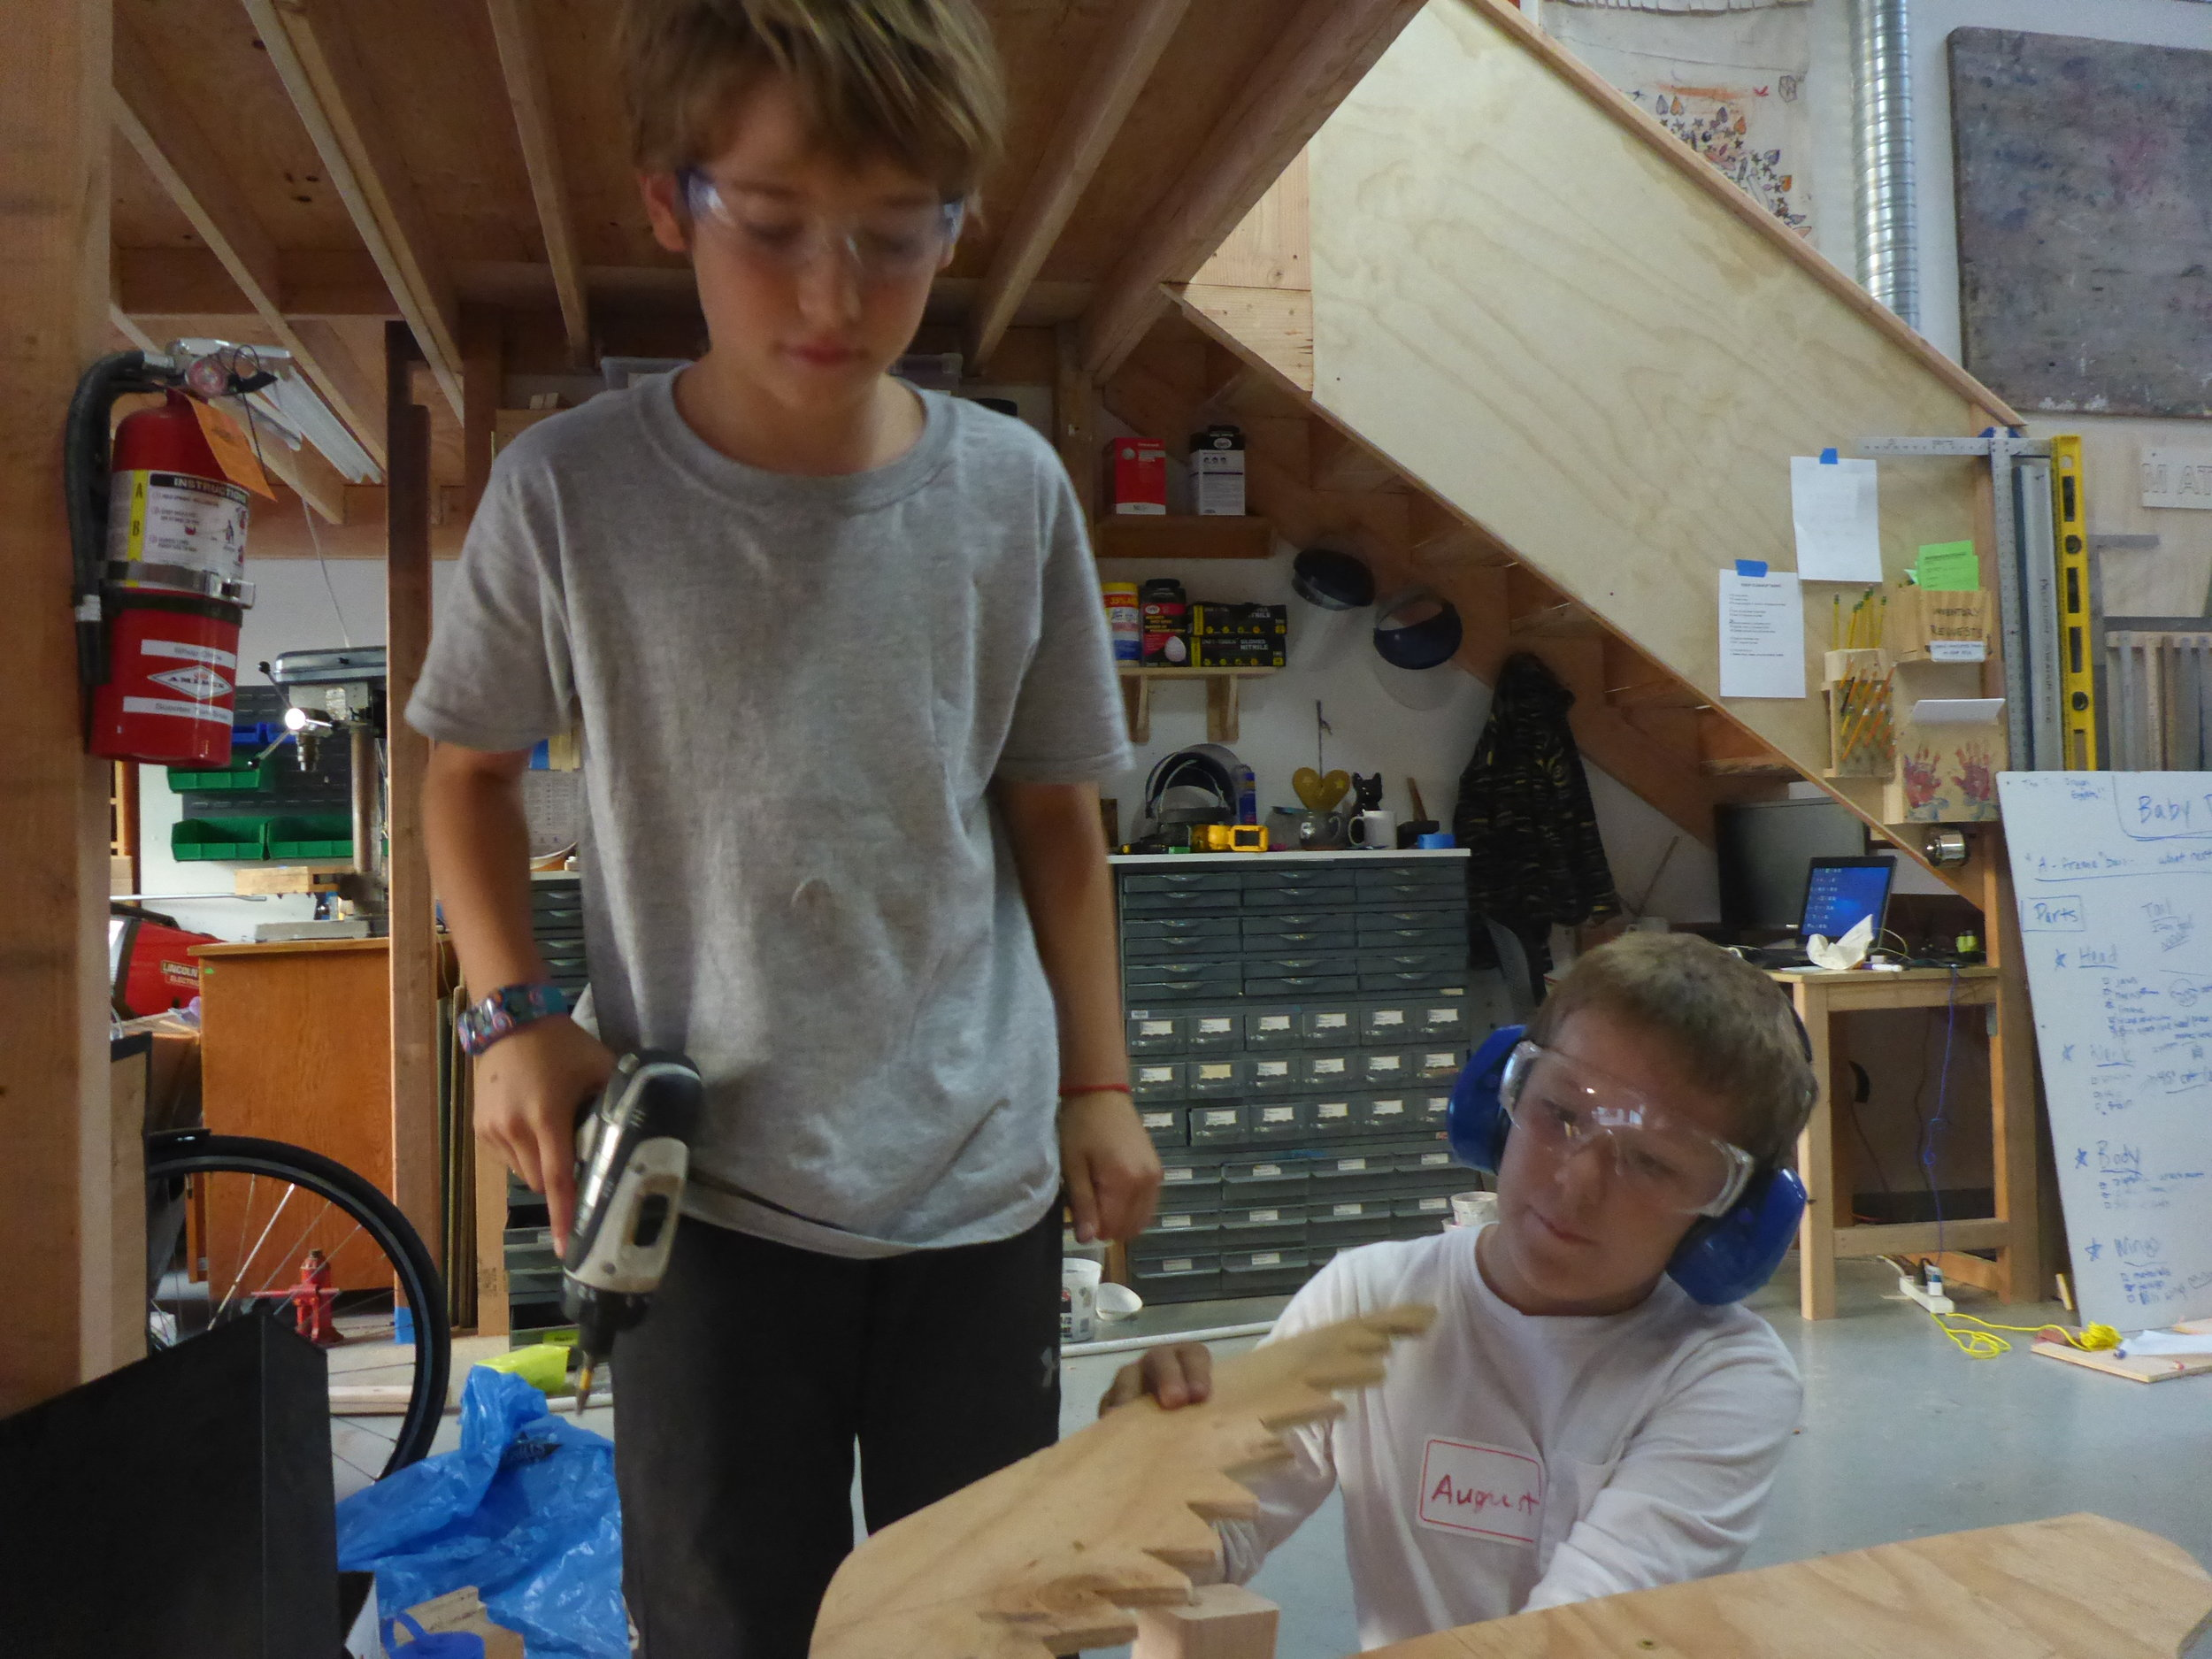 August recruited Jackson to help him build some cross supports for the dragon head he's been carefully crafting.